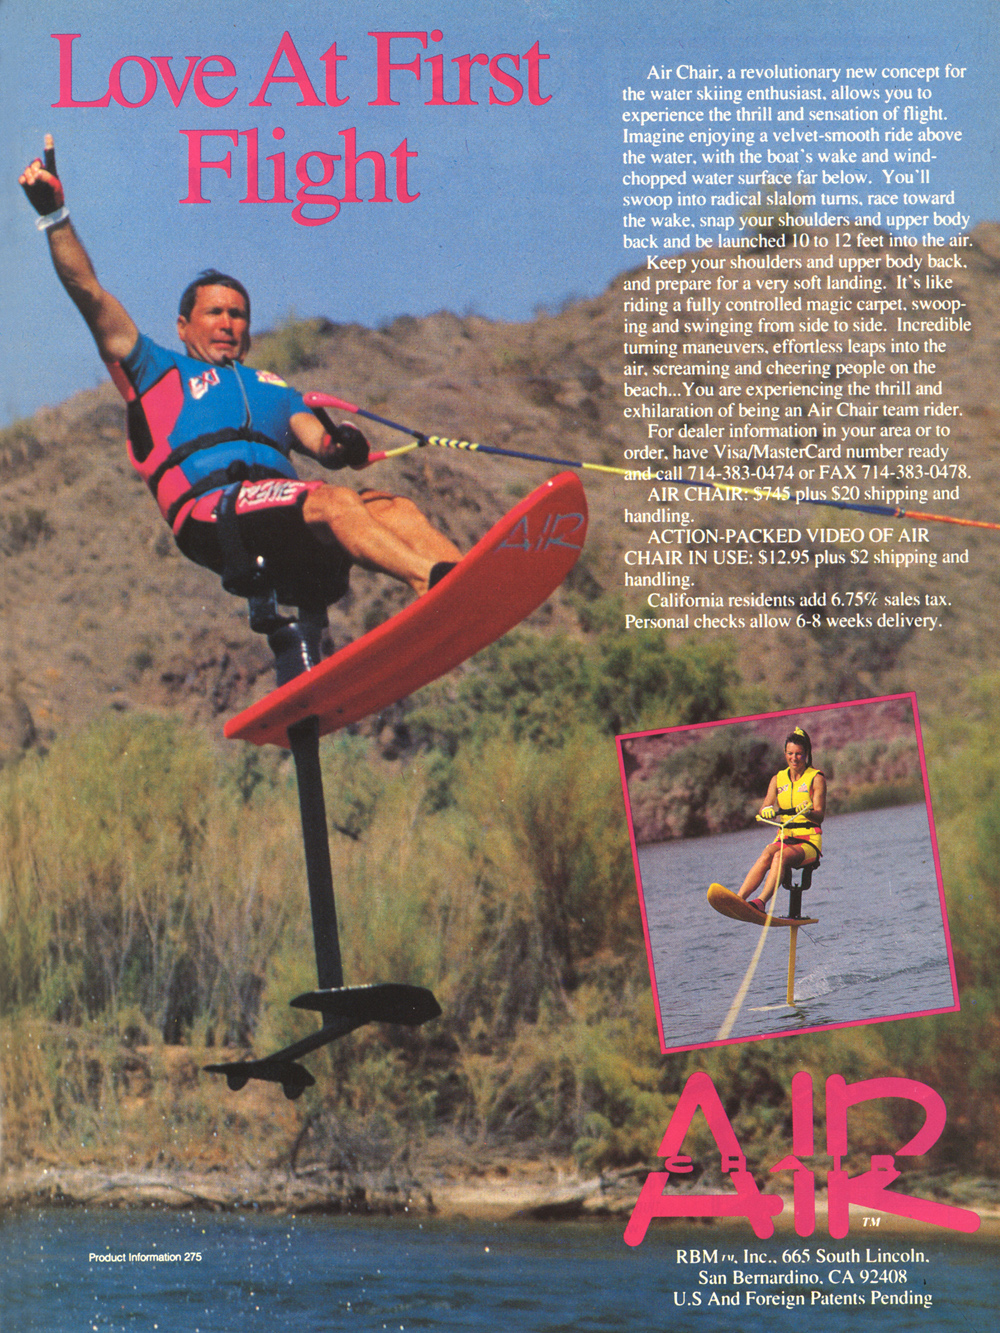 adventures-water-skiing-hydrofoiling-1991-air-chair-ad-video-woolley